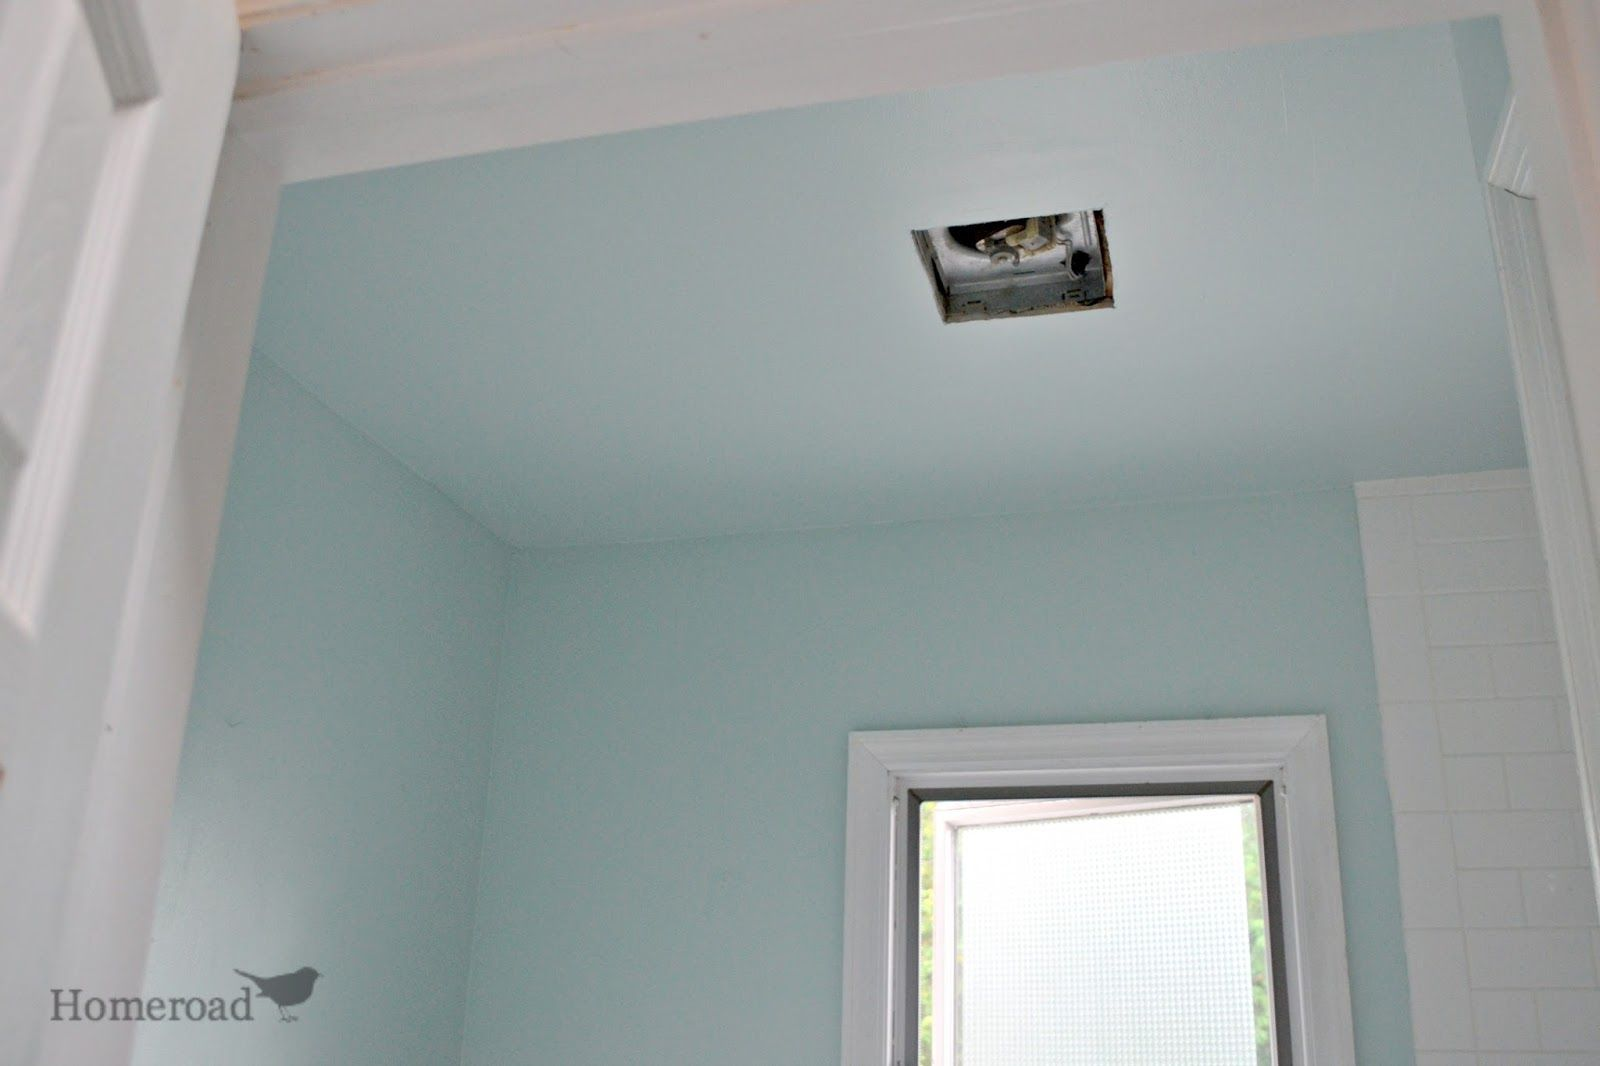 What type of paint is recommend for a bathroom ceiling?